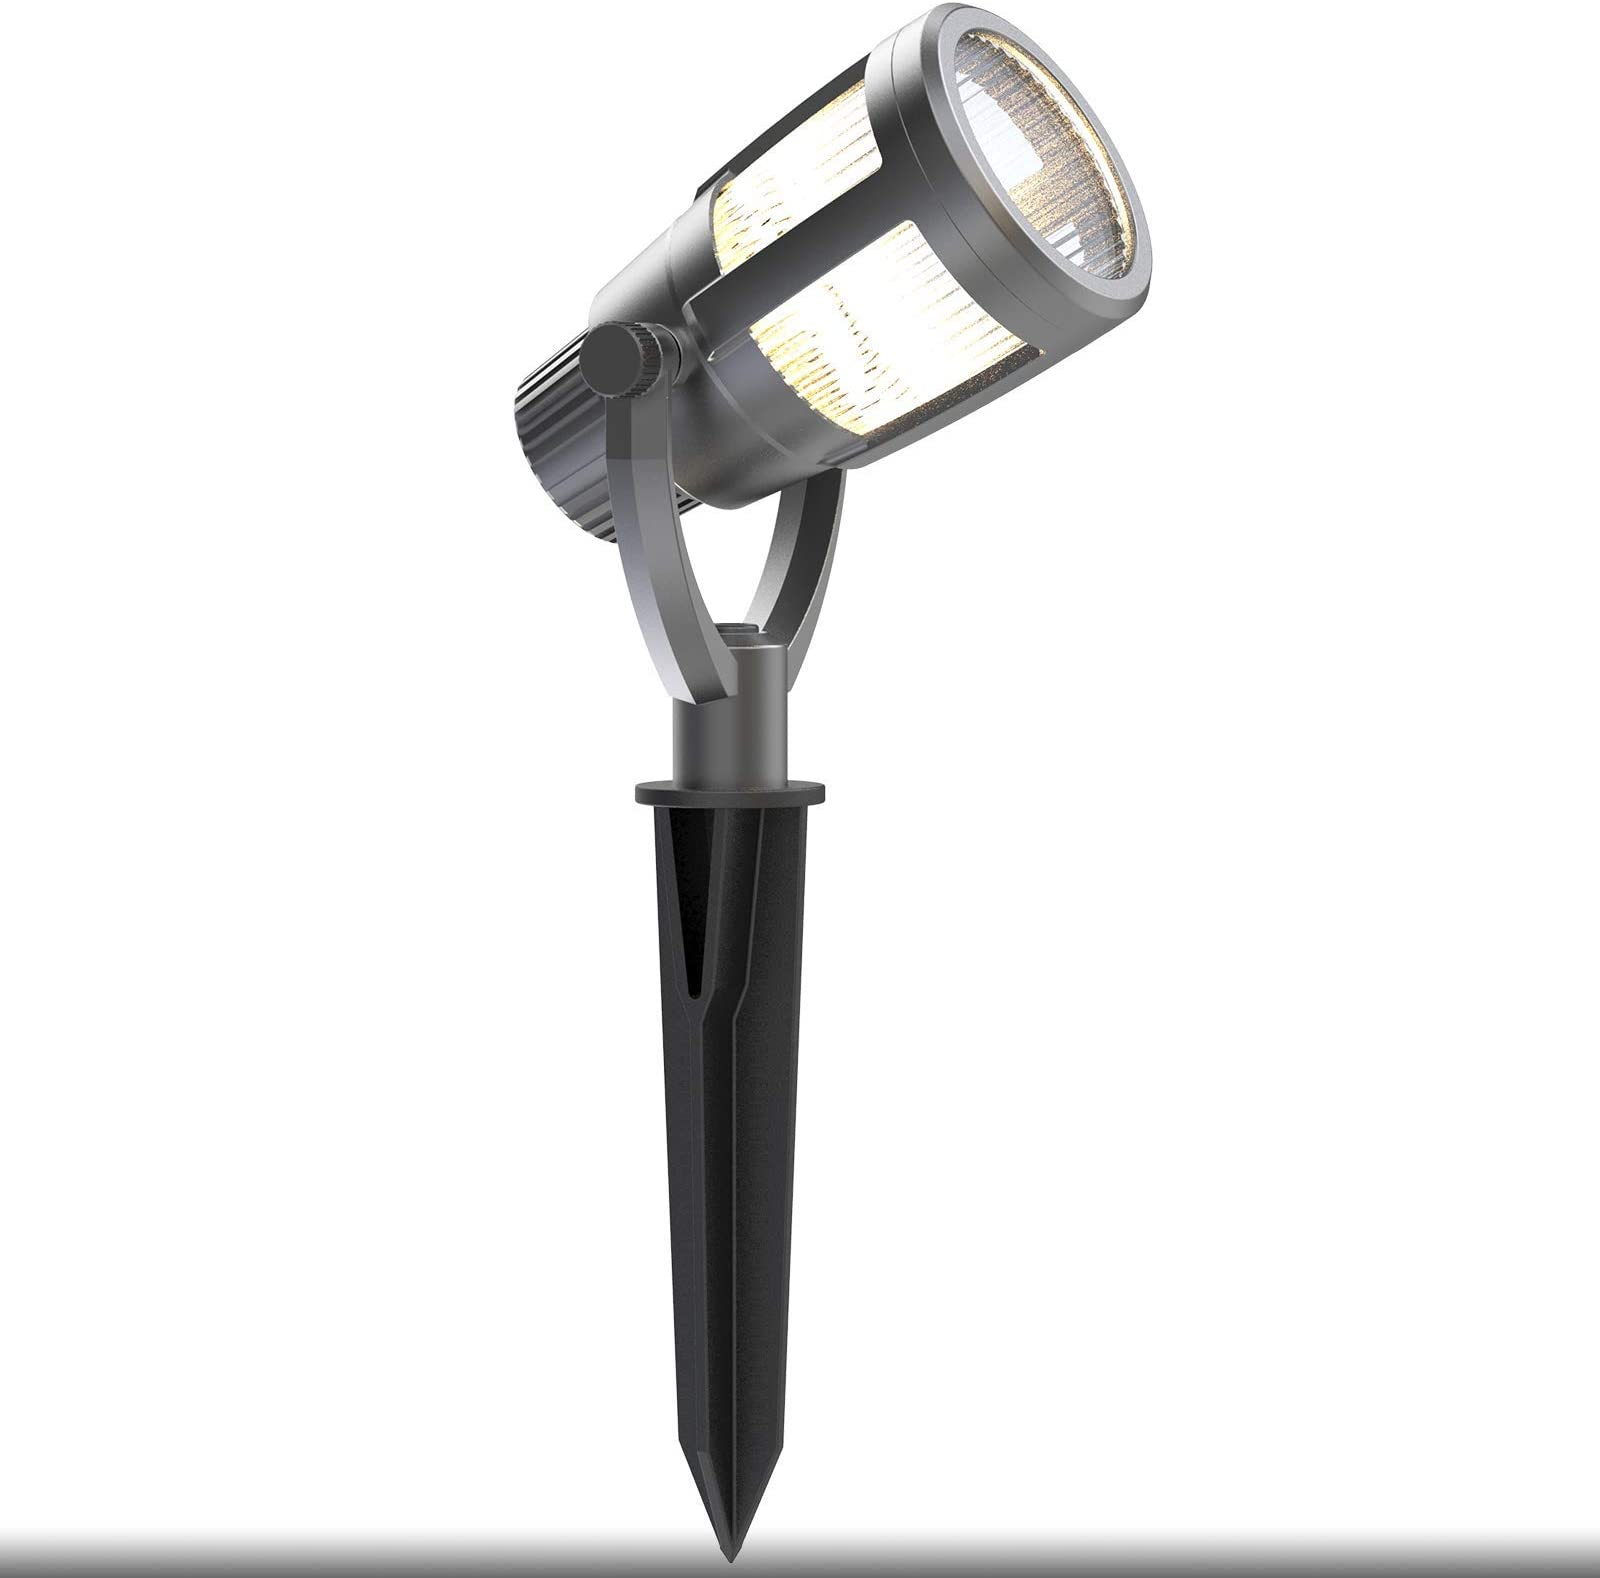 Malibu Prominence LED Floodlight LED Low Voltage Landscape Lighting Outdoor Spotlight Waterproof Lighting for Driveway, Yard, Lawn, Flood, Garden, Outdoor Lighting 8418-2606-01